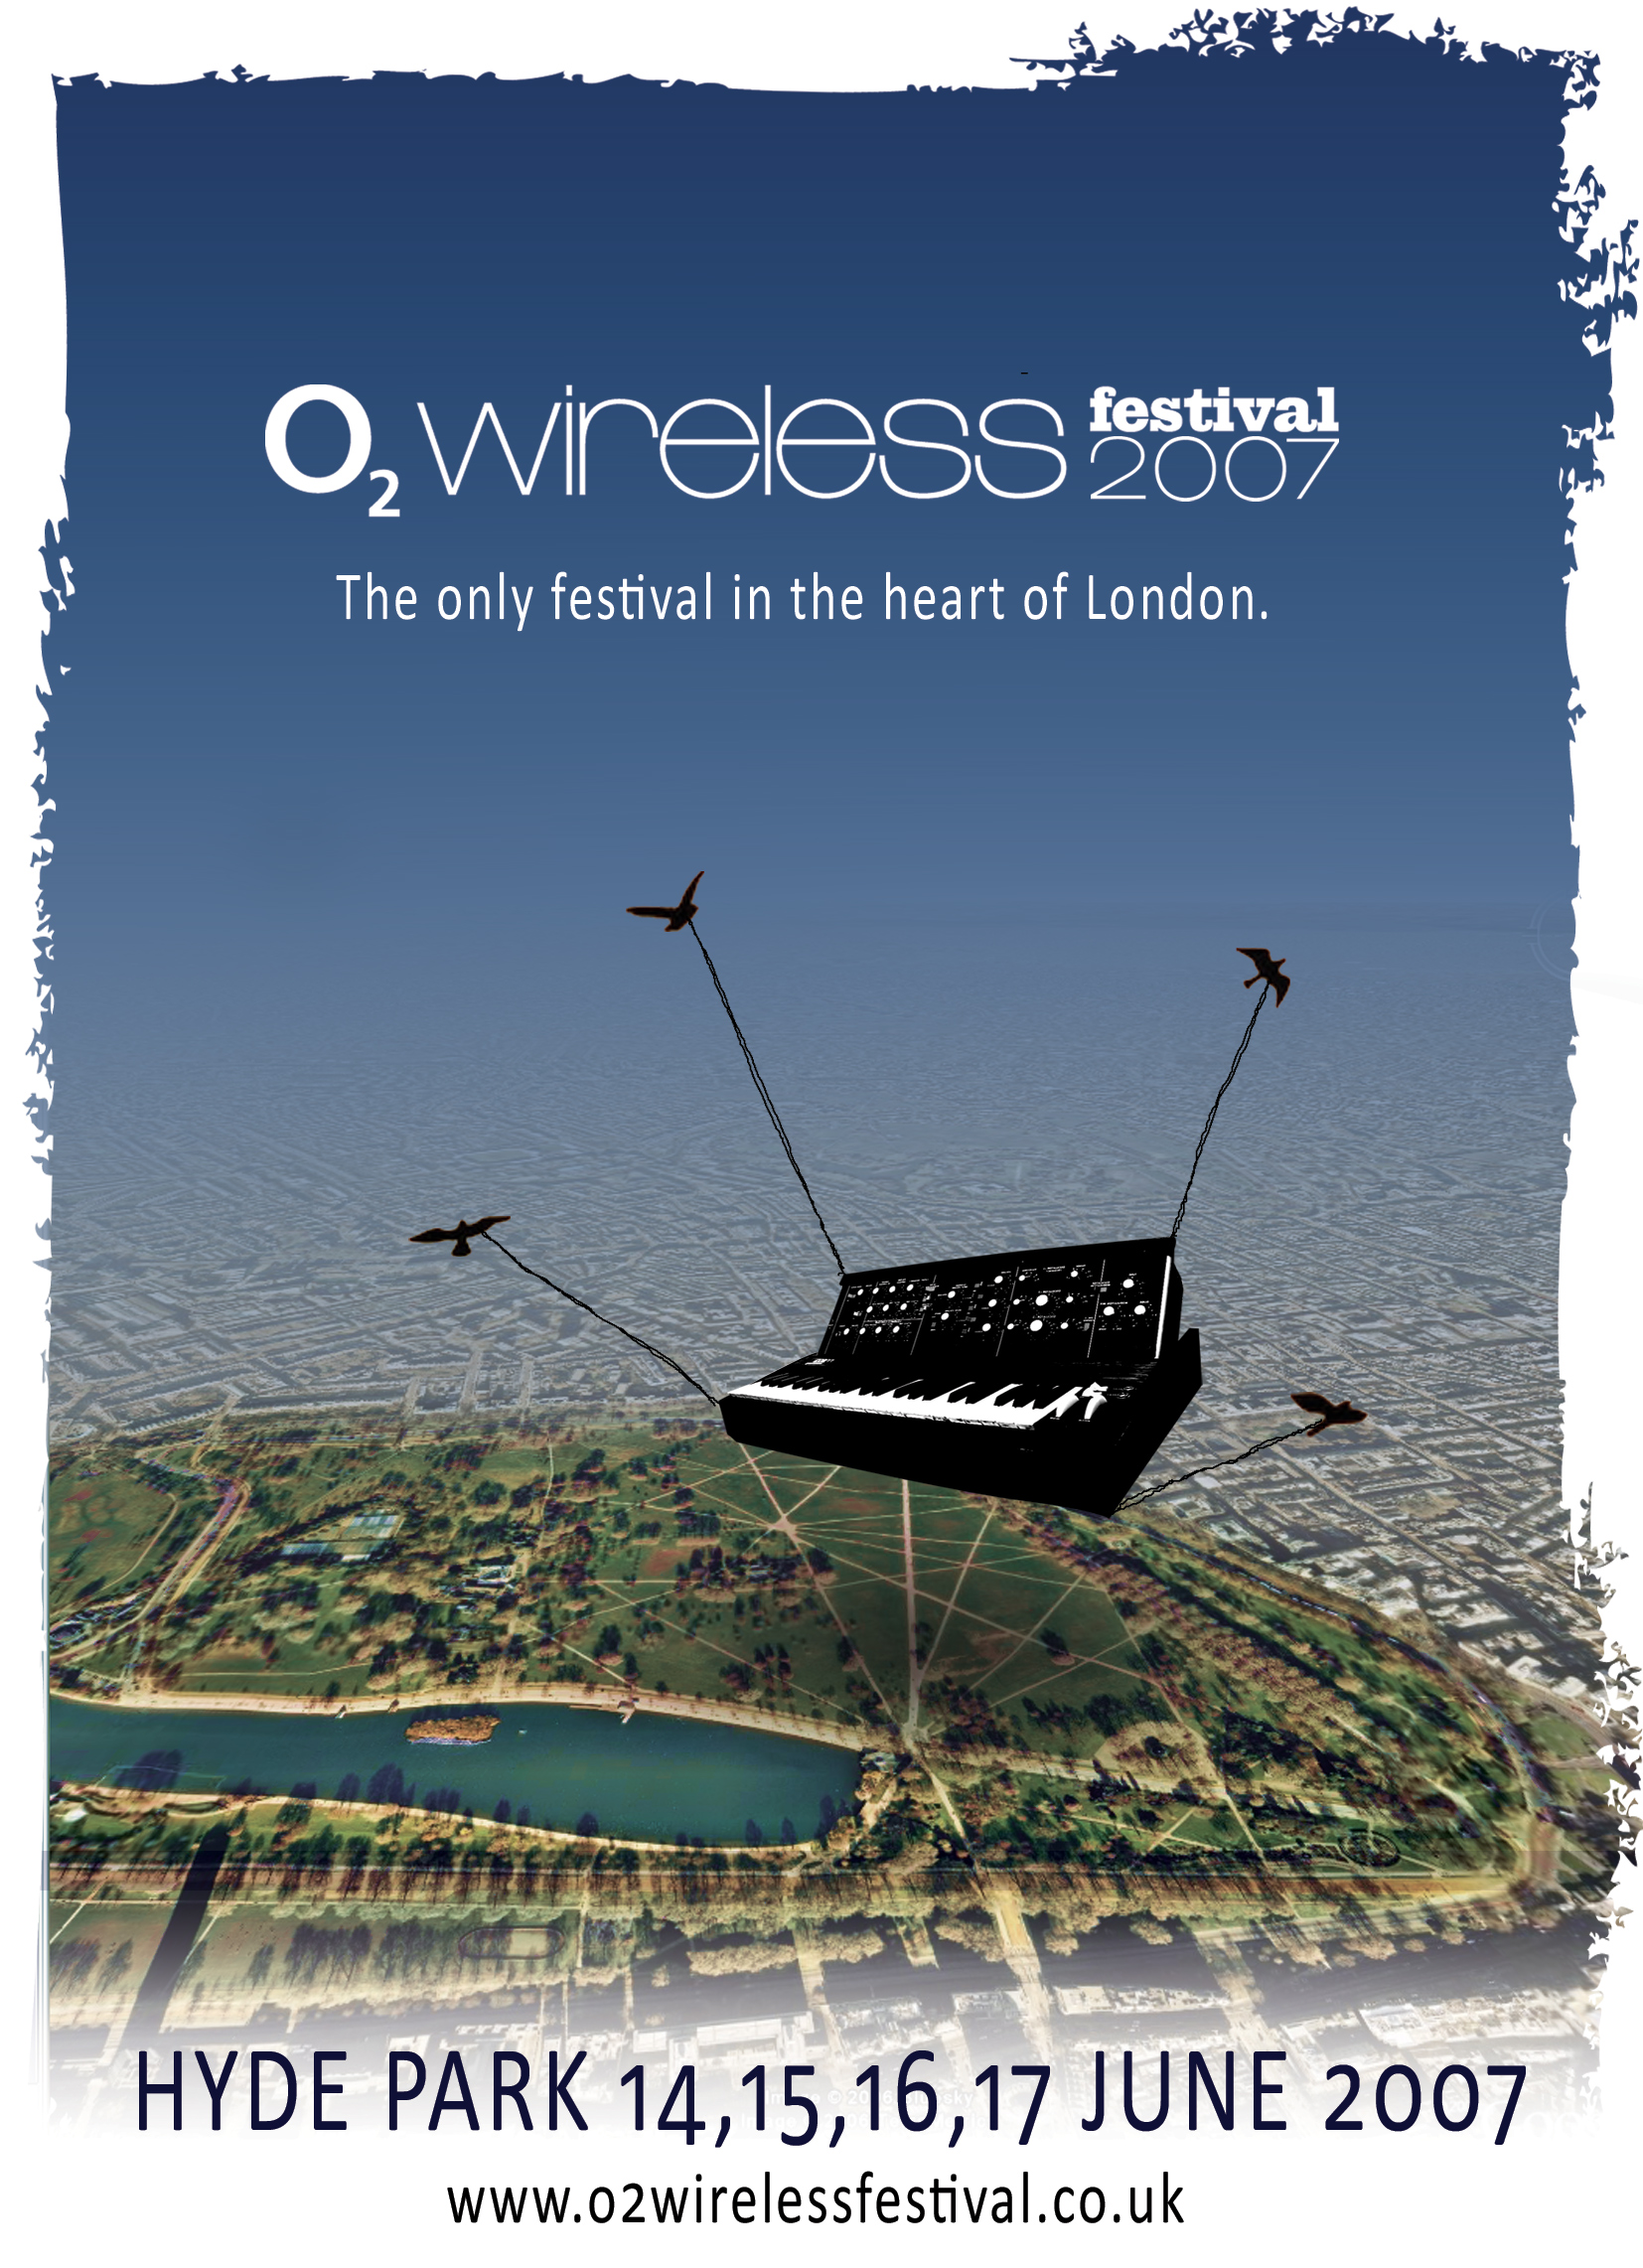 My unused design for the 2007 Wireless Festival